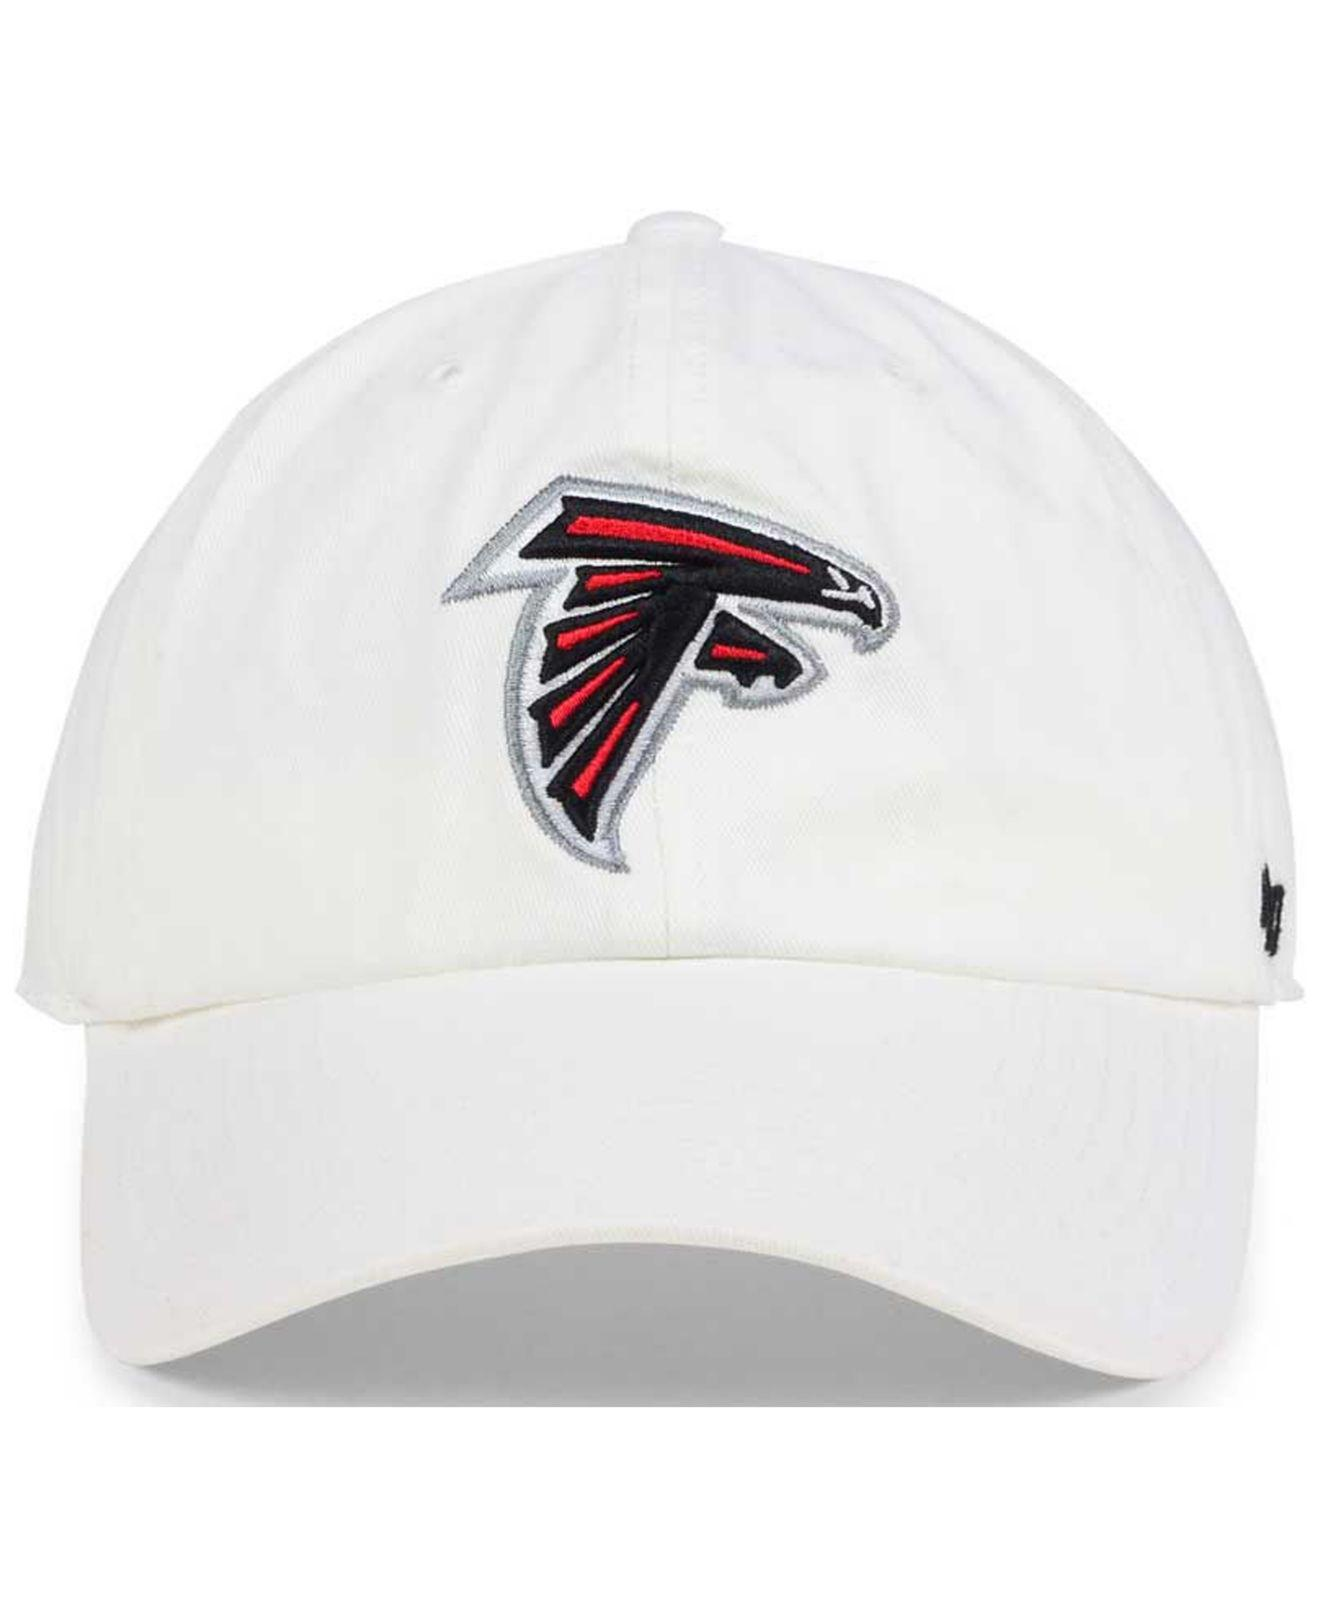 premium selection 74ff4 c192a Lyst - 47 Brand Atlanta Falcons Clean Up Strapback Cap in White for Men